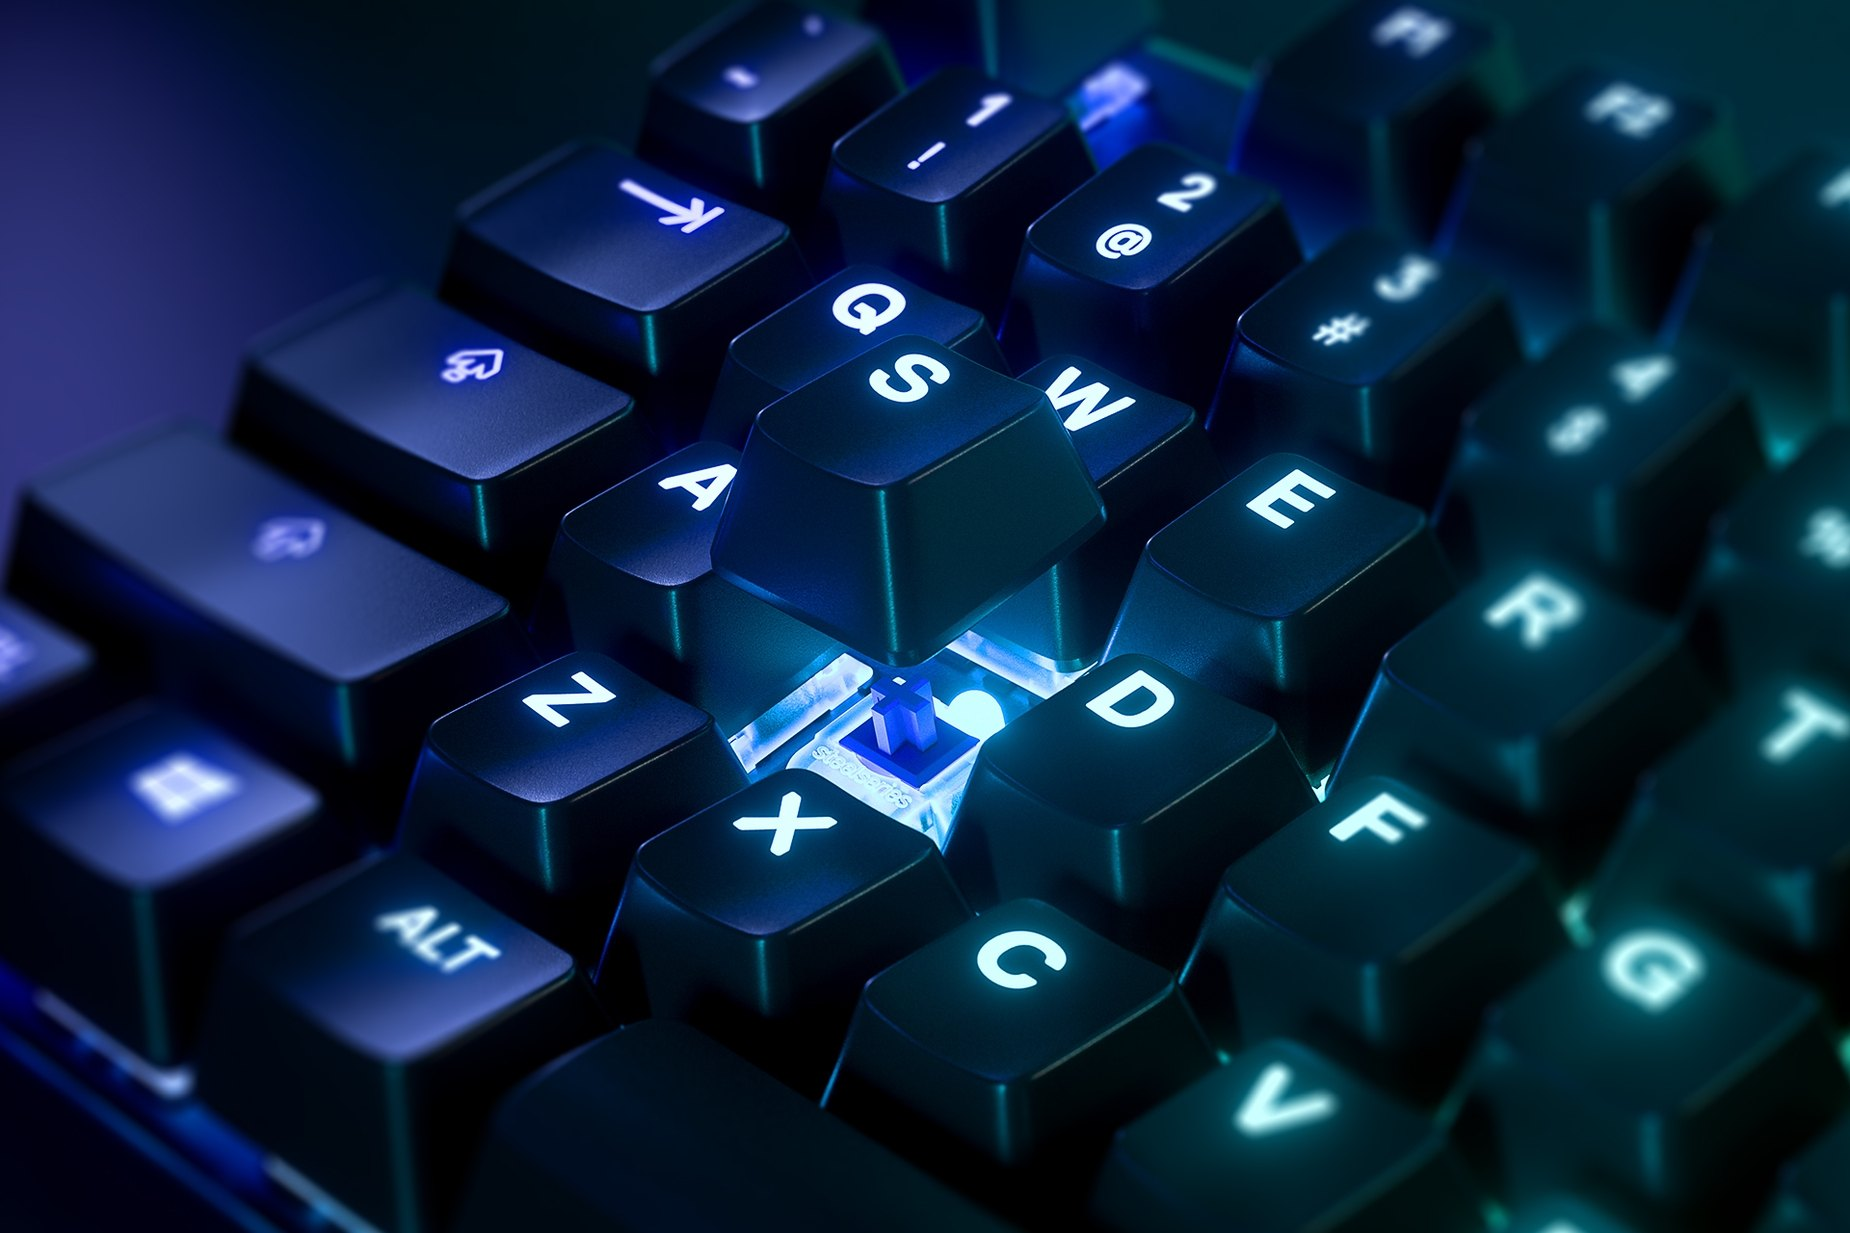 Zoomed in view of a single key on the Japanese-Apex 7 (Blue Switch) gaming keyboard, the key is raised up to show the SteelSeries QX2 Mechanical RGB Switch underneath